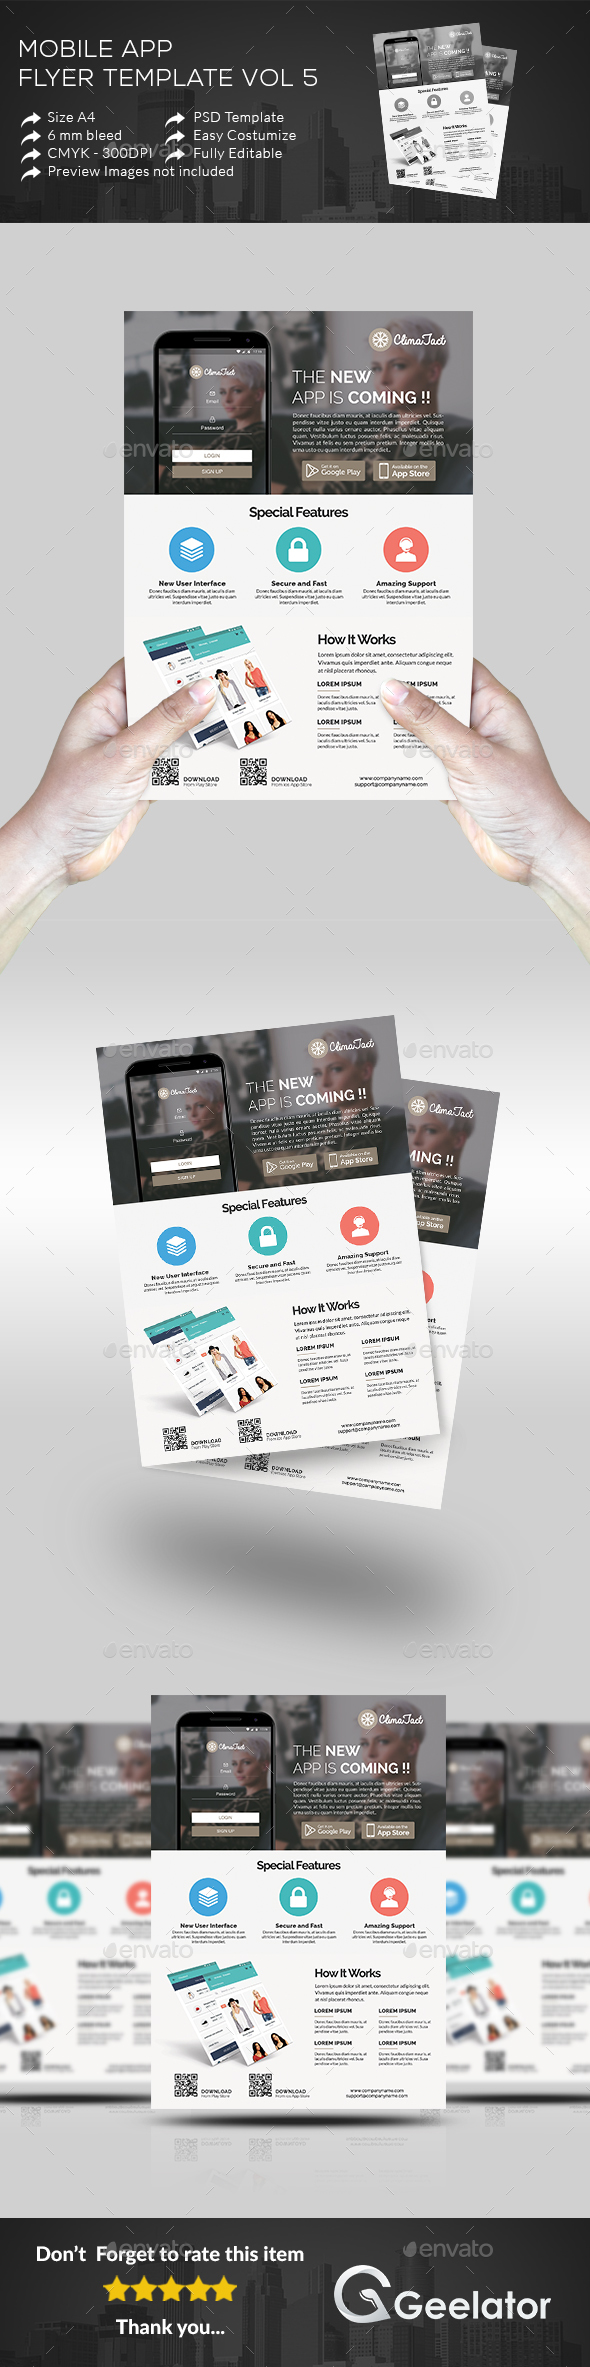 Mobile App Flyer Template 5 - Commerce Flyers